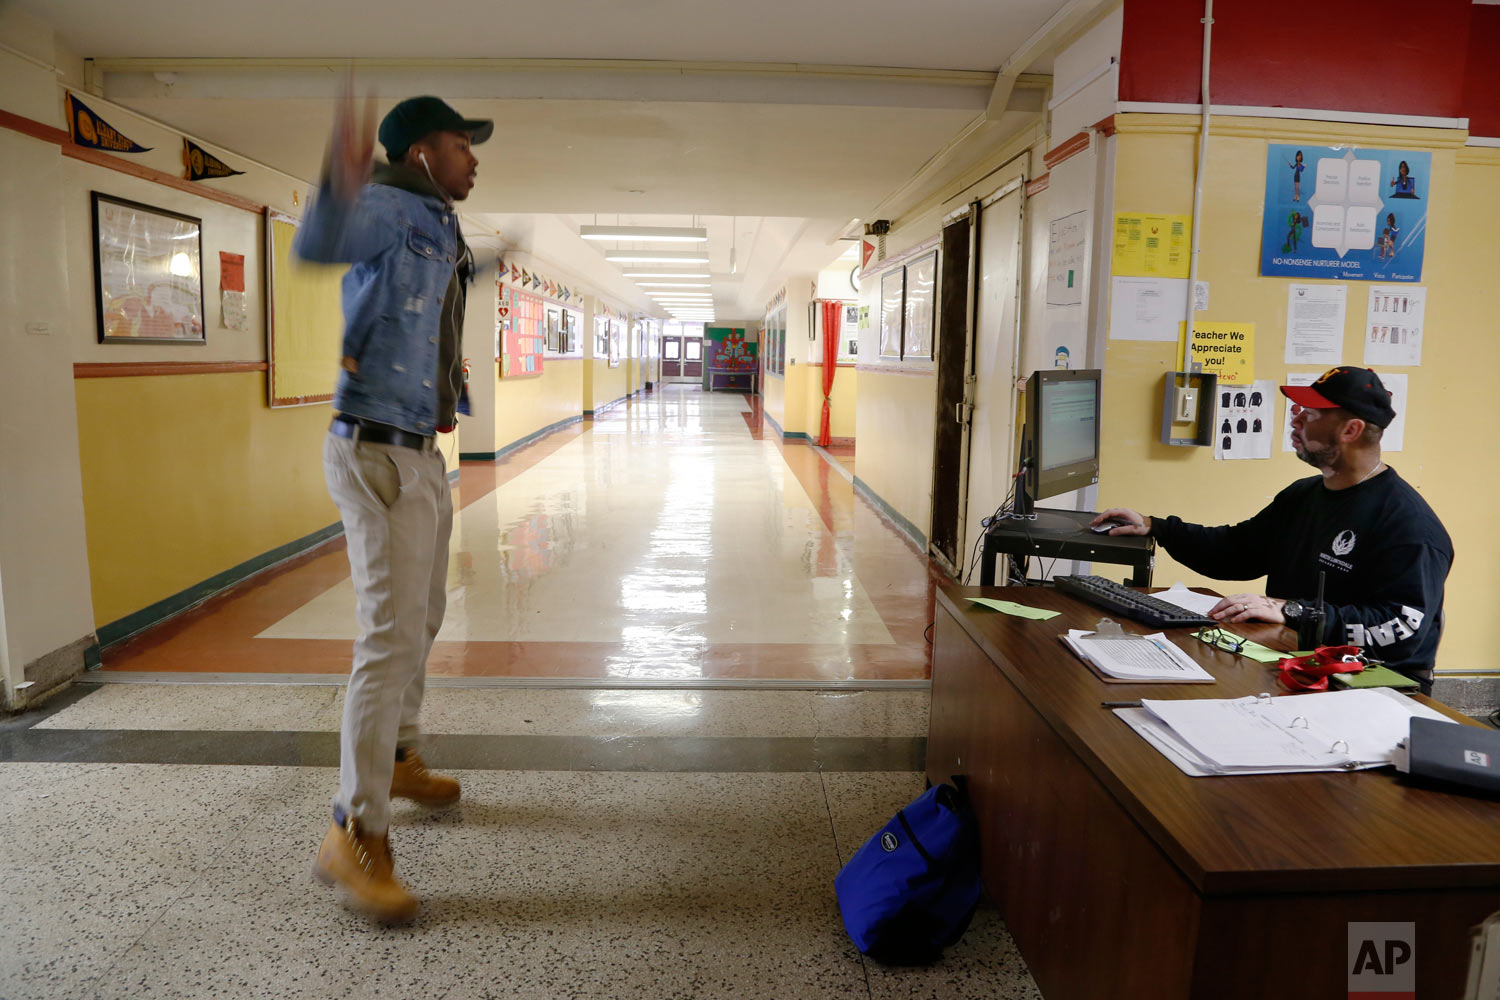 Gerald Smith, student advocate and dean of restorative justice at Chicago's North Lawndale College Prep High School, right, watches after telling a student to do jumping jacks as a consequence for arriving late to school on Thursday, April 19, 2018. Smith also serves as the adult adviser for the school's Peace Warrior group. (AP Photo/Martha Irvine)